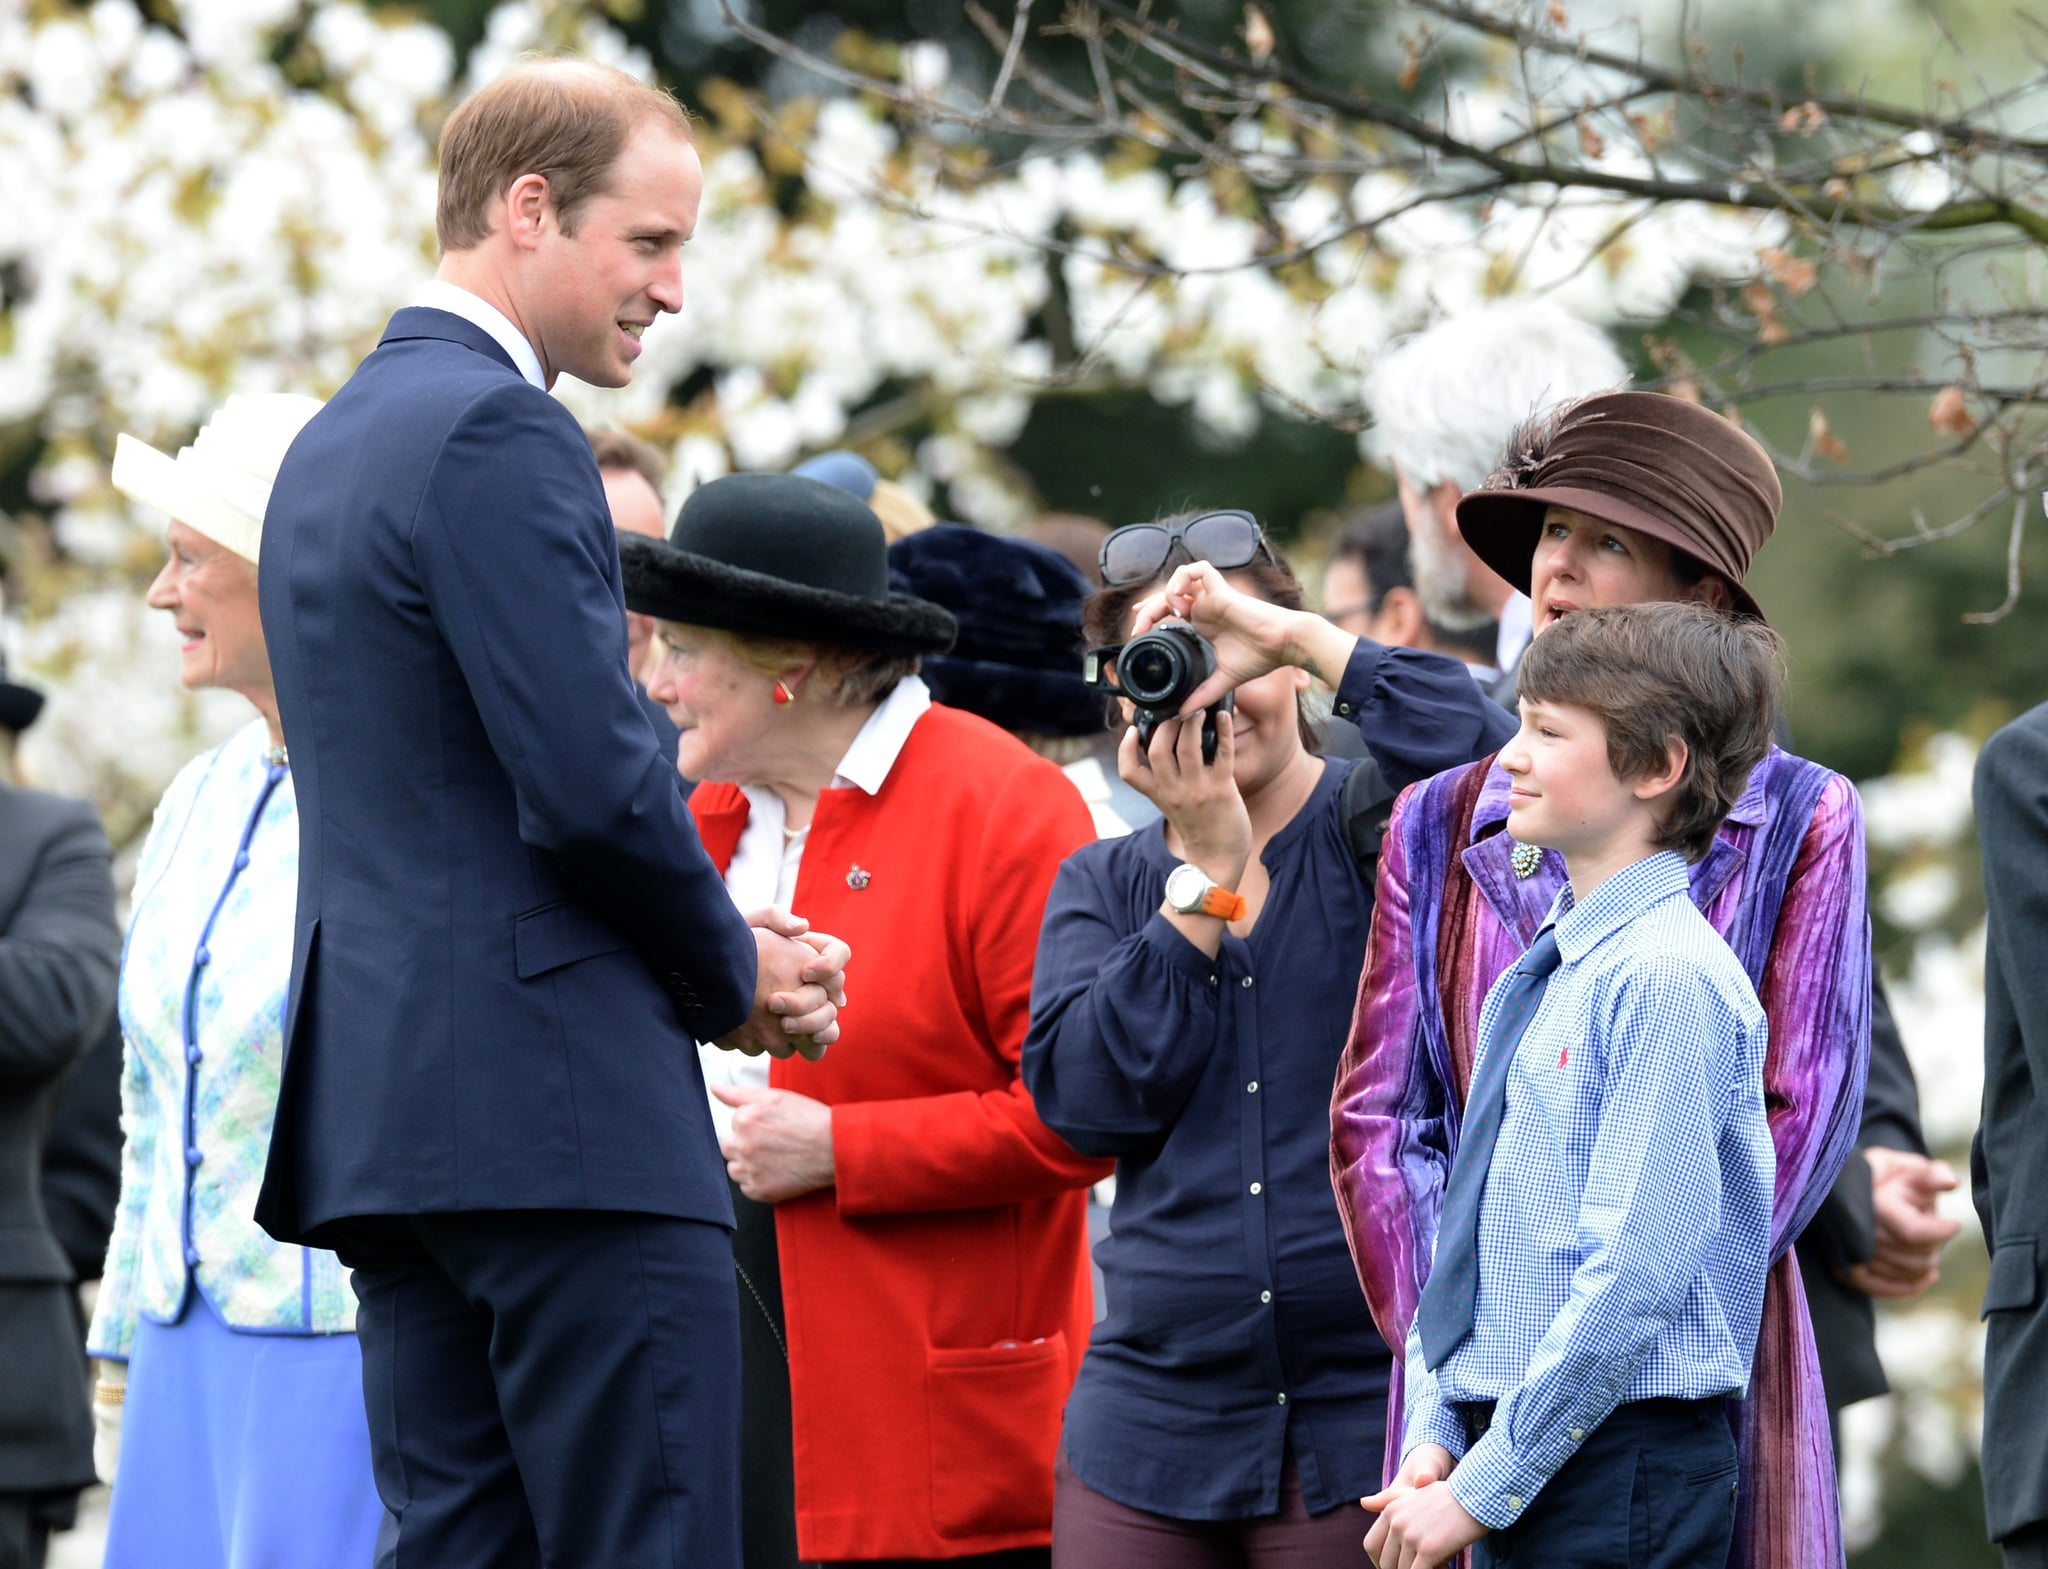 Prince William shared a moment with a young Brit at the Windsor Greys statue unveiling in England.